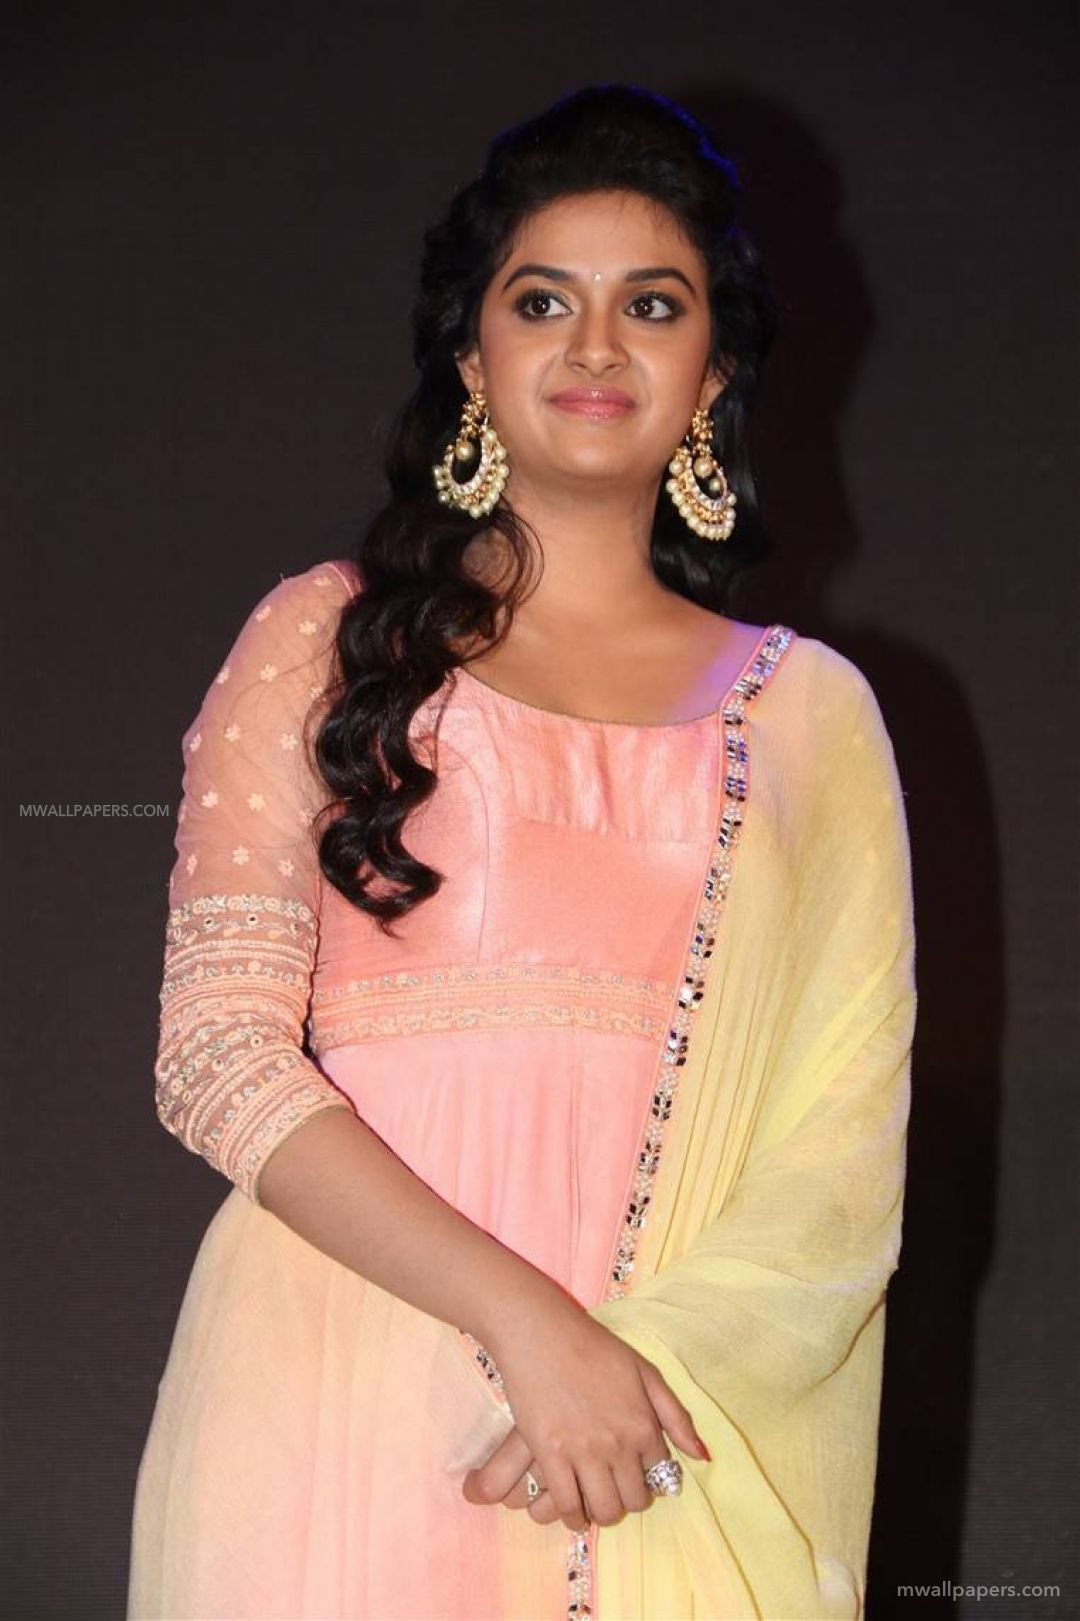 Keerthy Suresh HD Wallpapers (Desktop Background / Android / iPhone) (1080p, 4k) (58452) - Keerthy Suresh